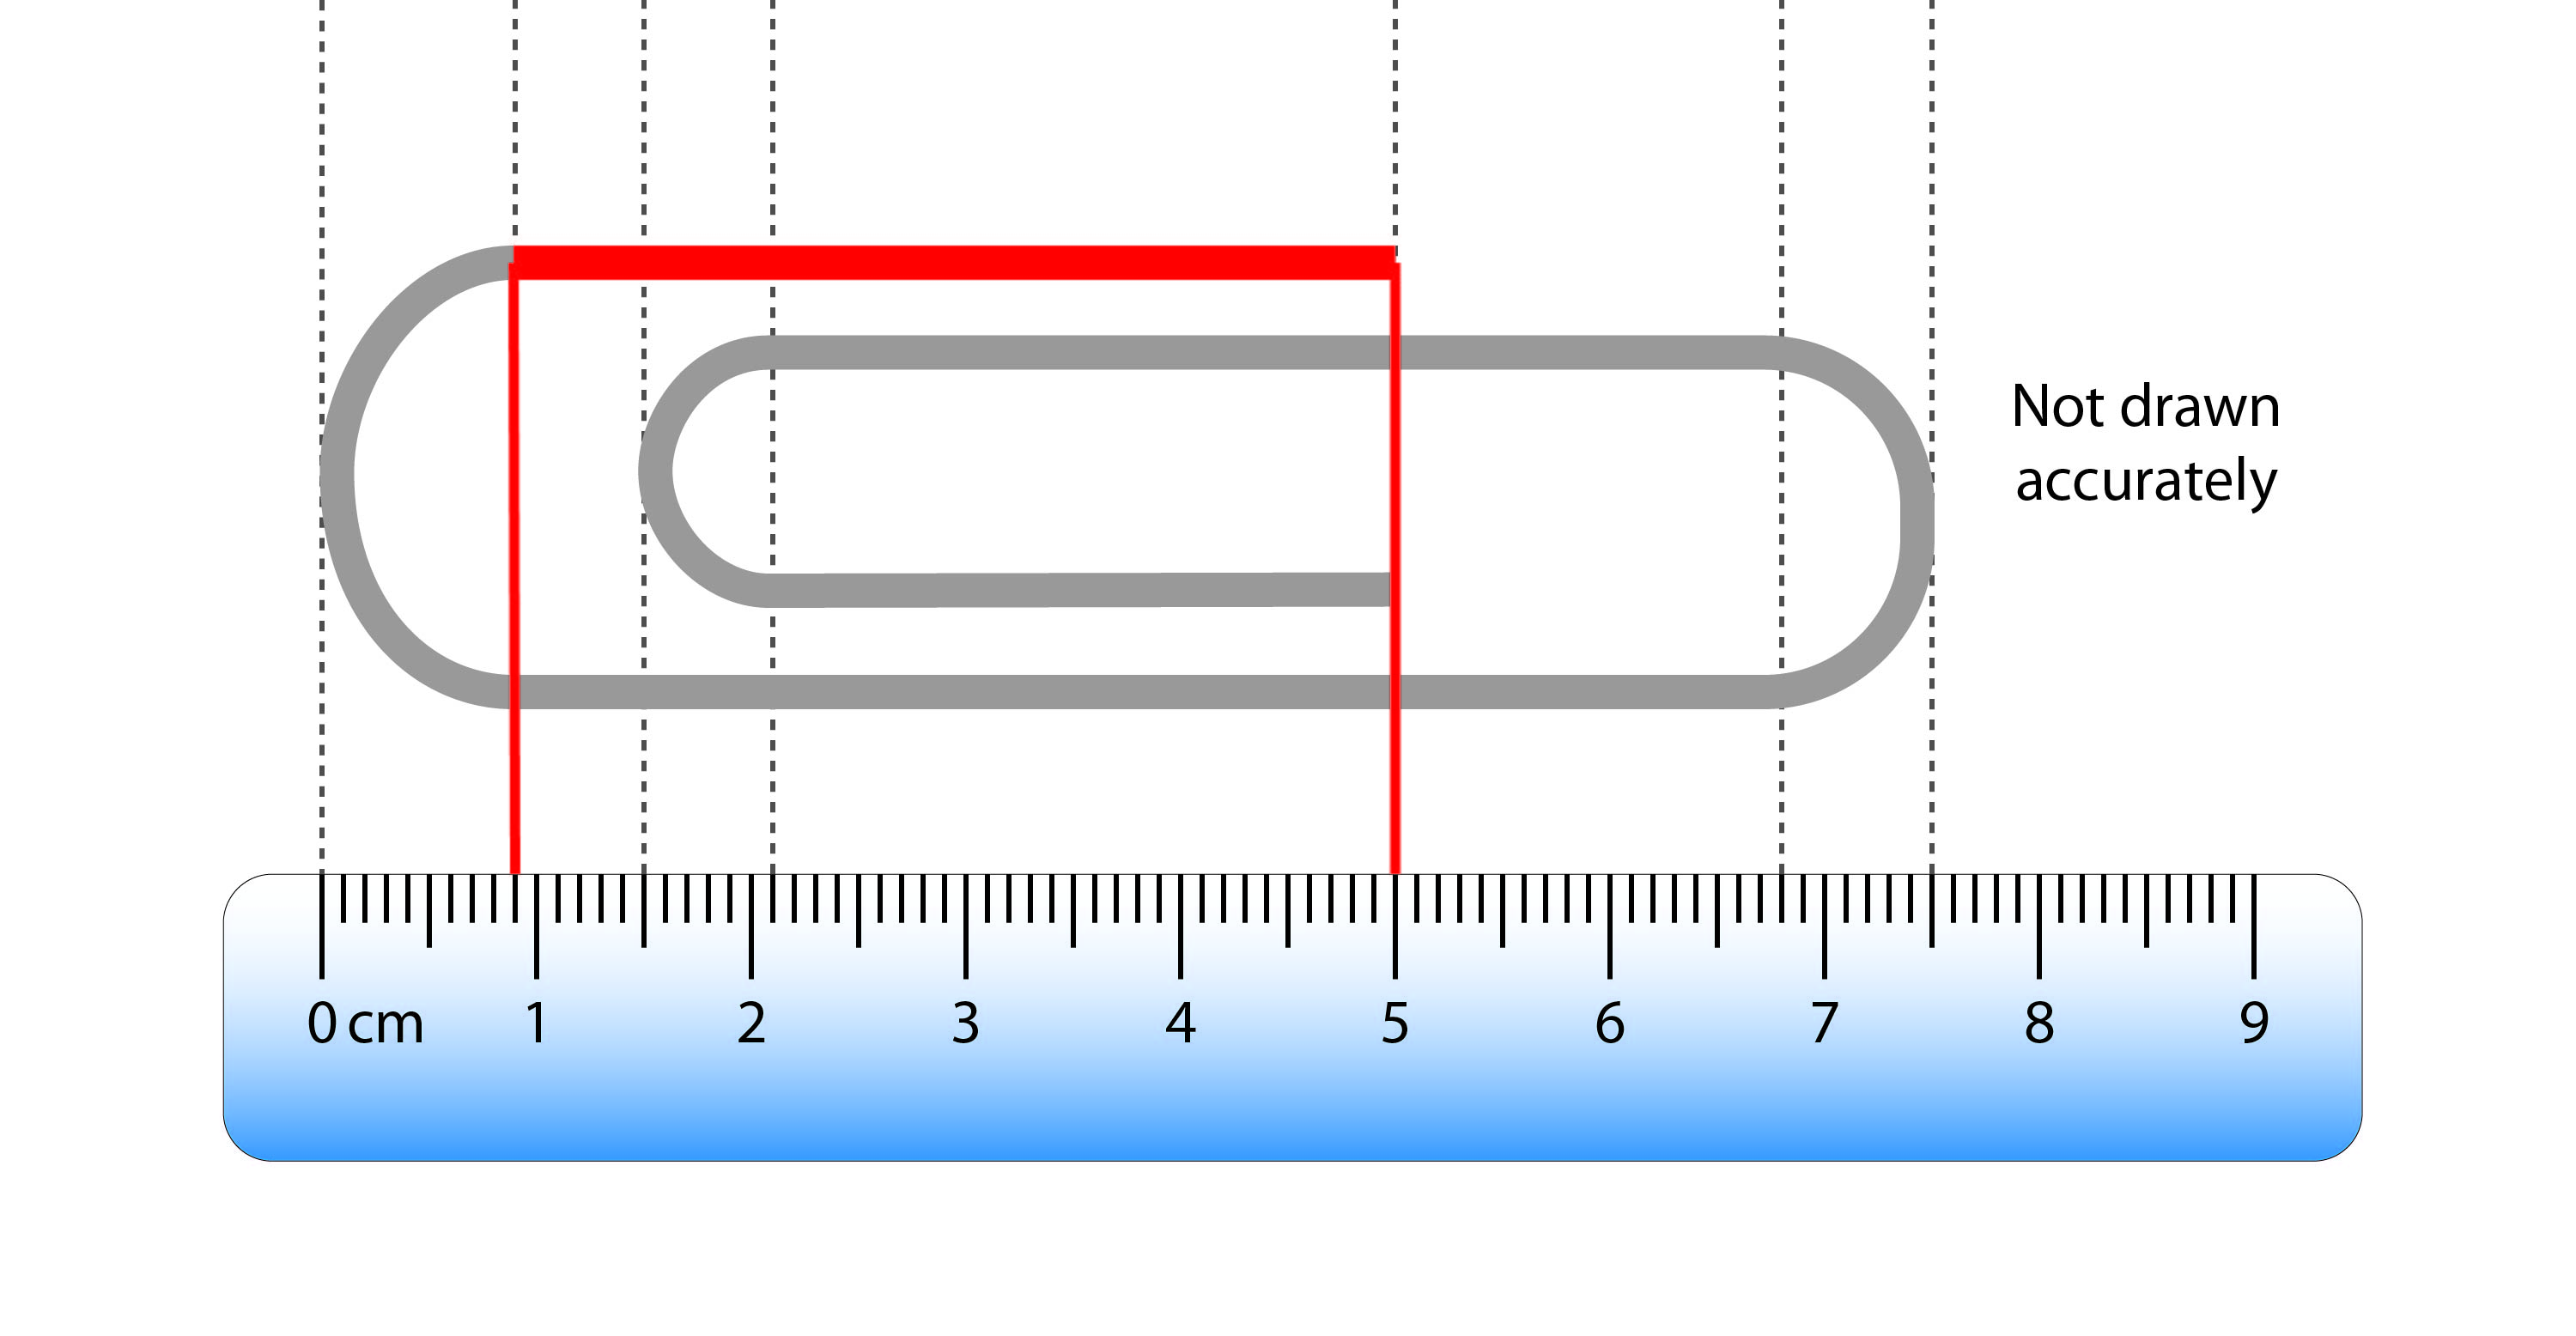 The red line measures 4.1cm